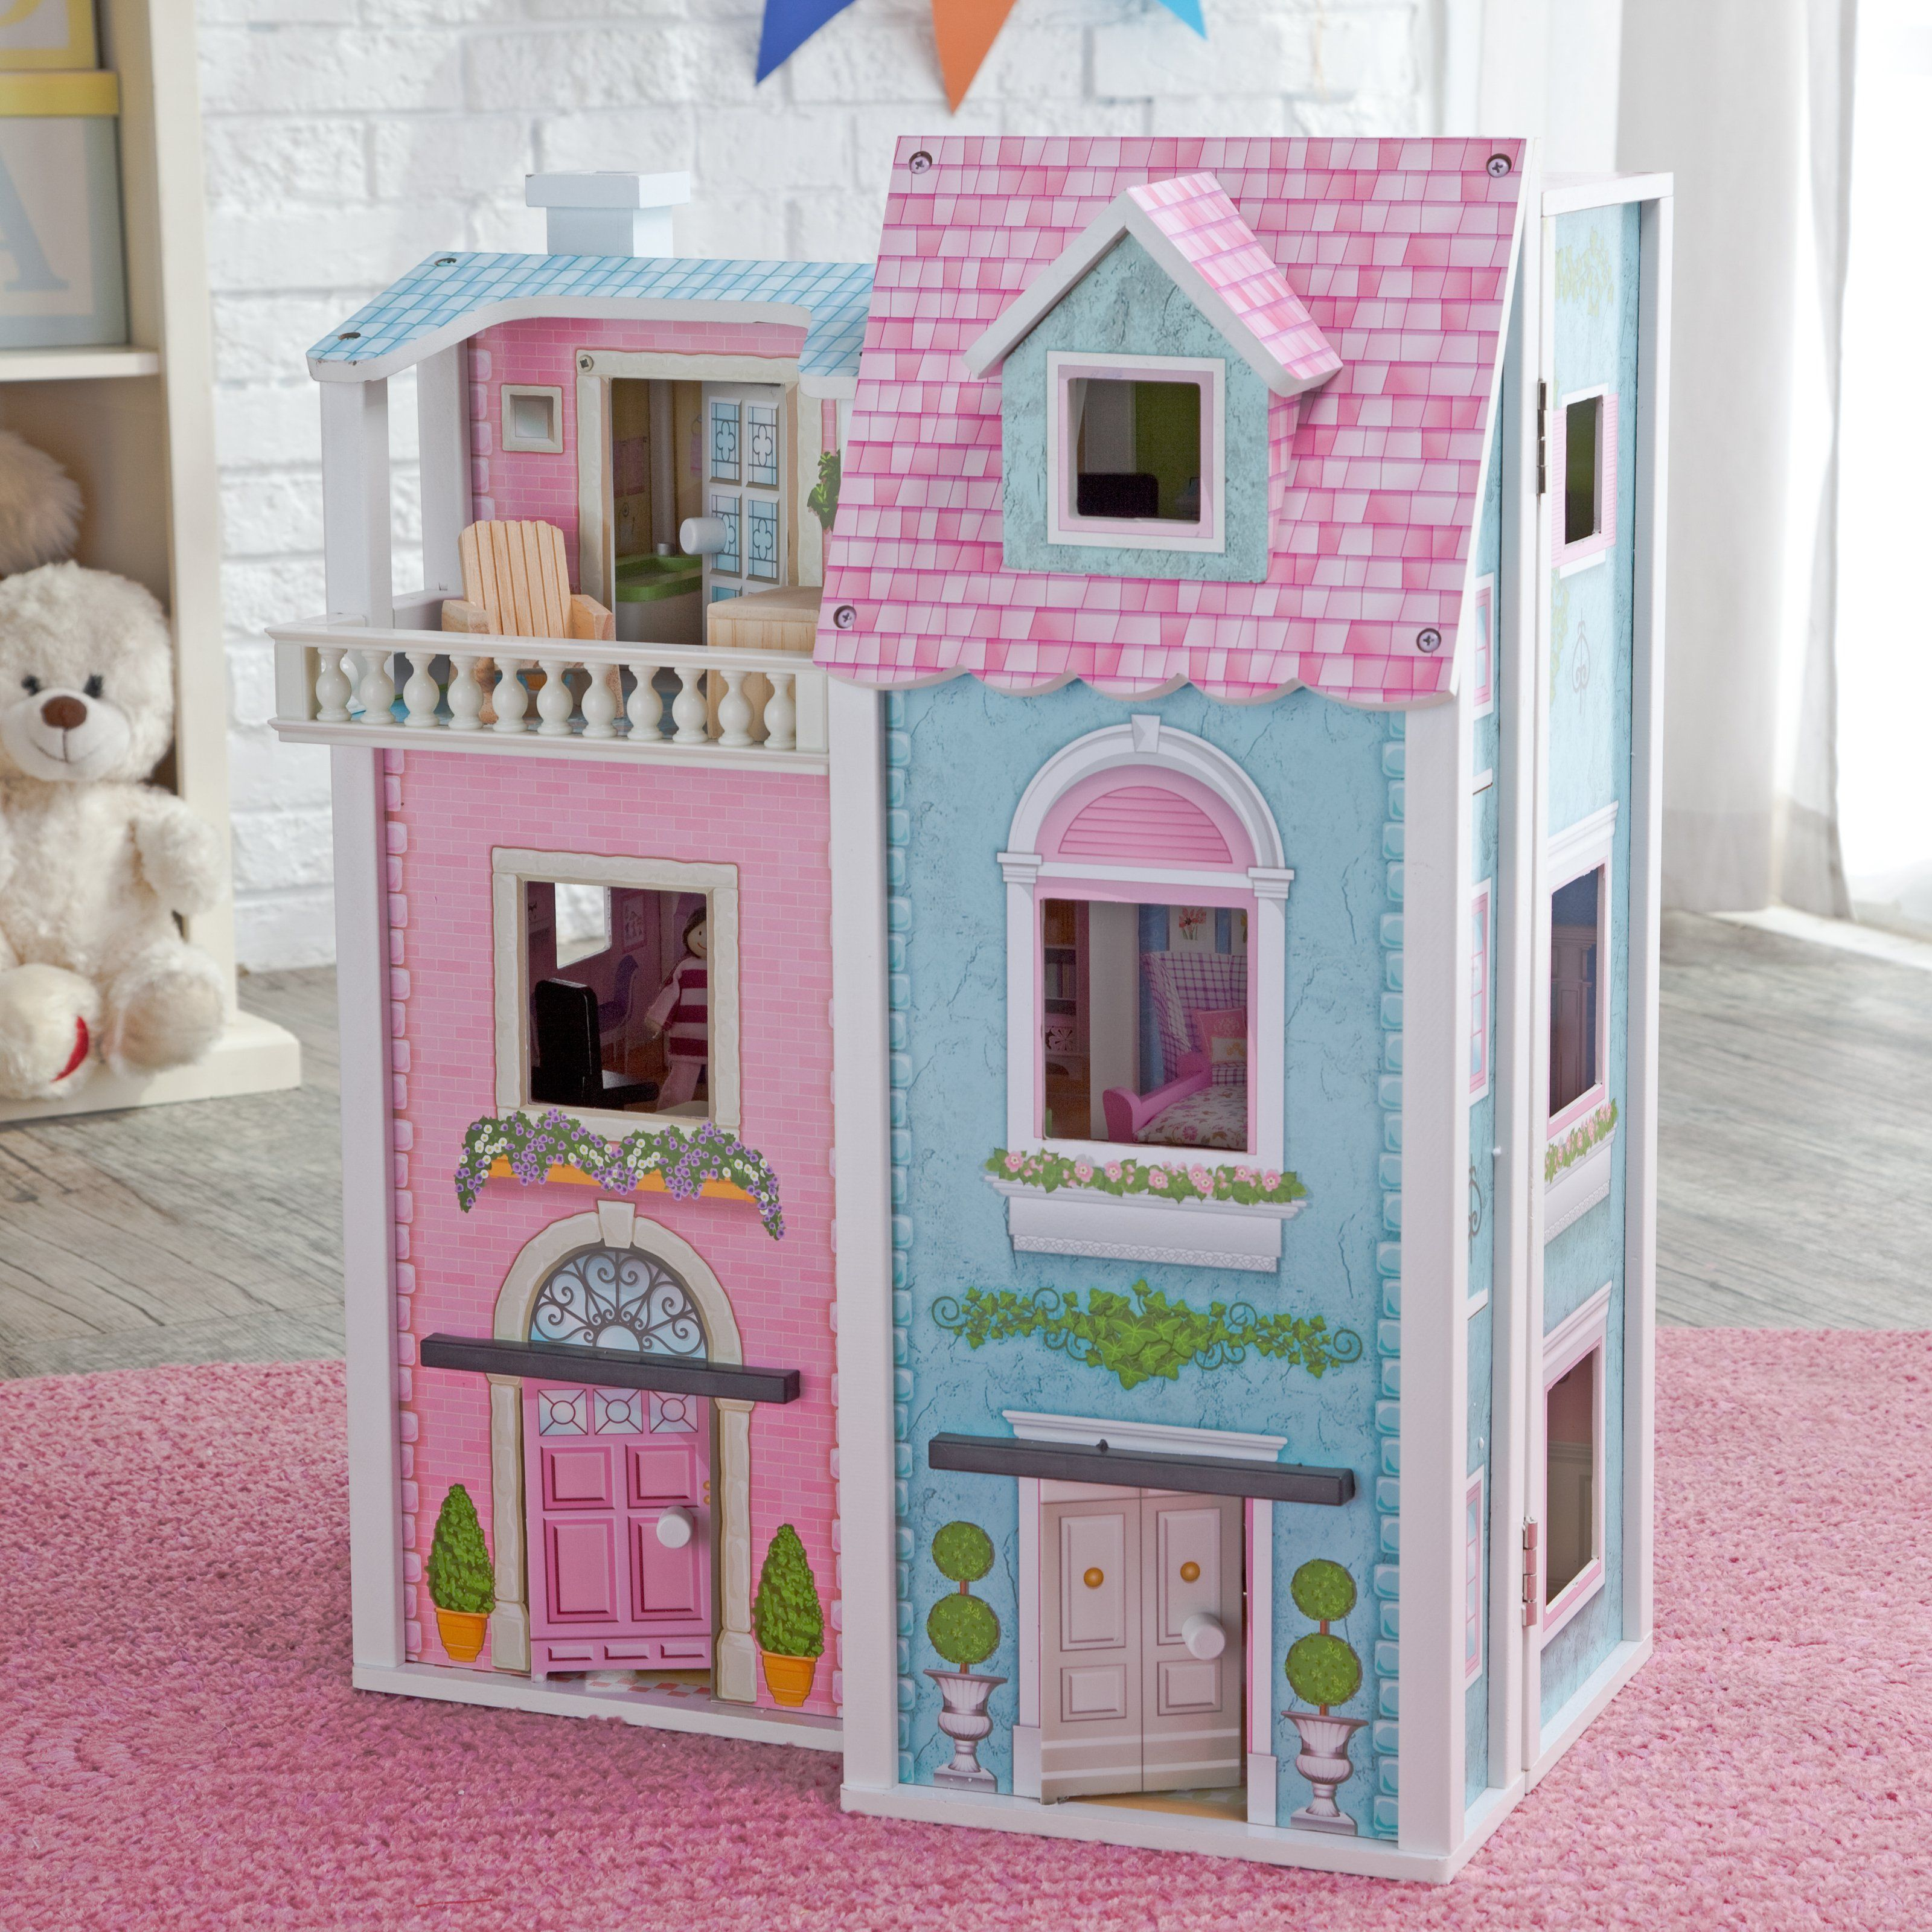 1000+ images about Kidcraft on Pinterest Mansions, Barbie and ... - ^